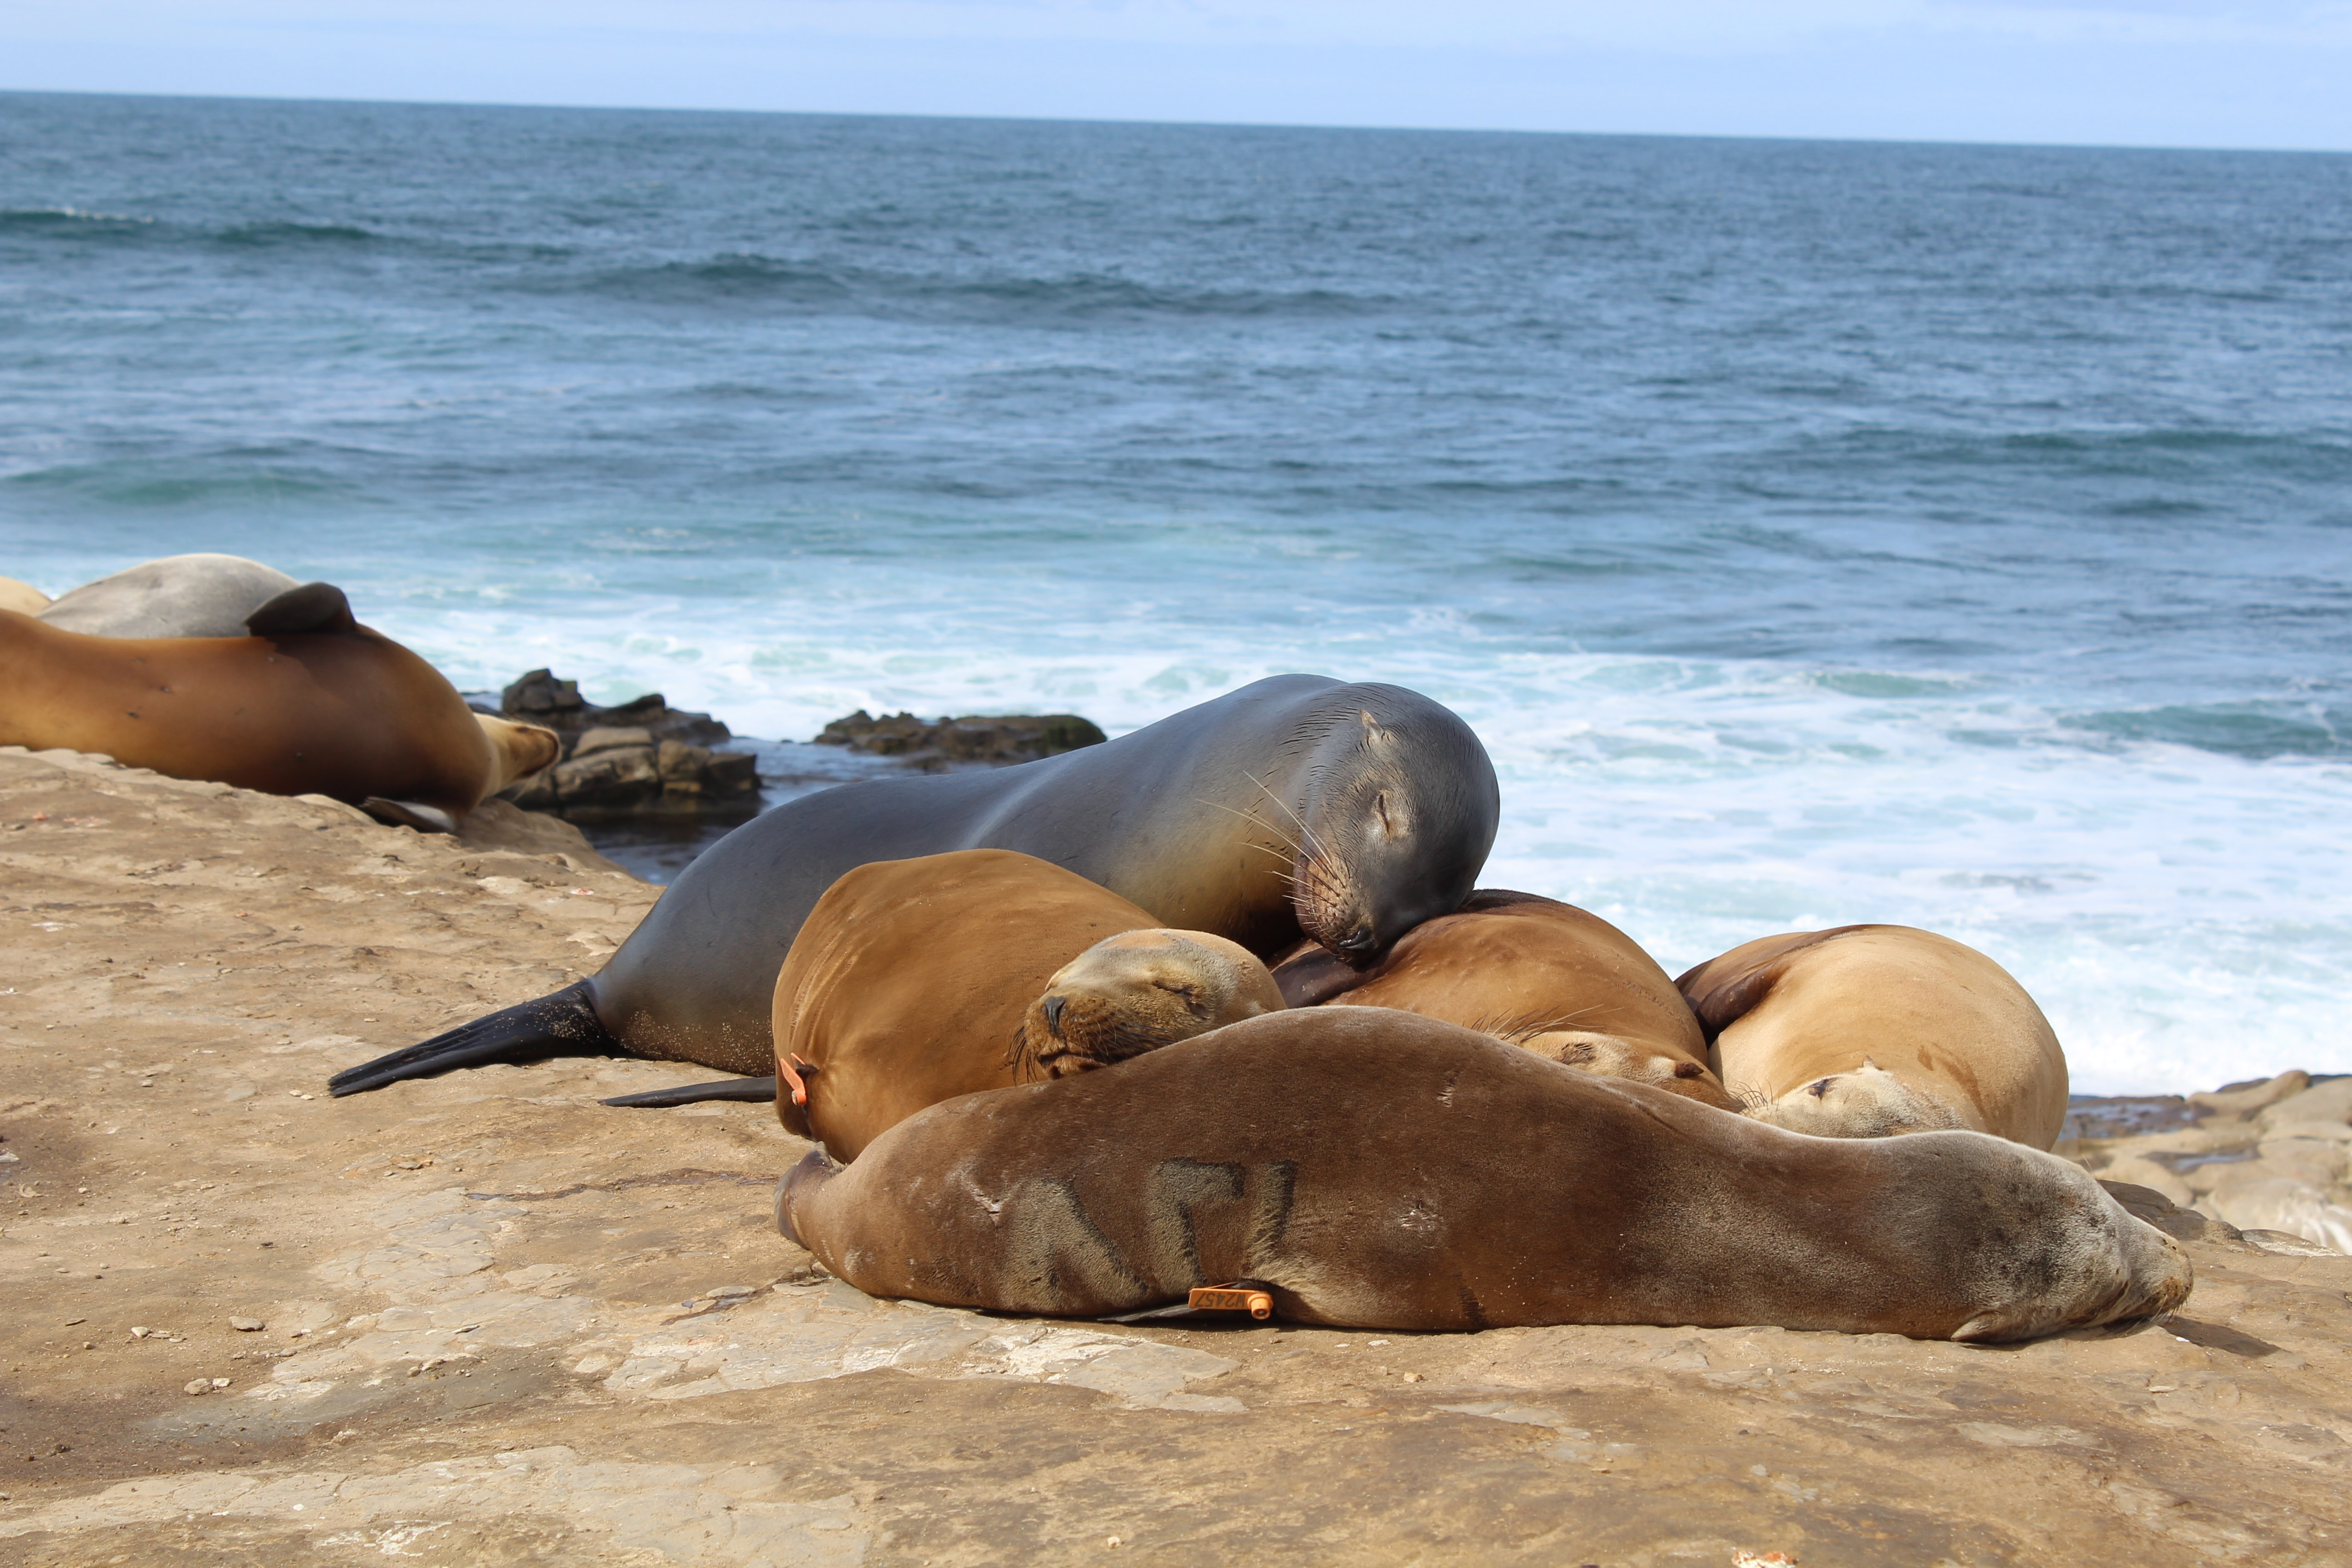 sea lions on land resting next to sea